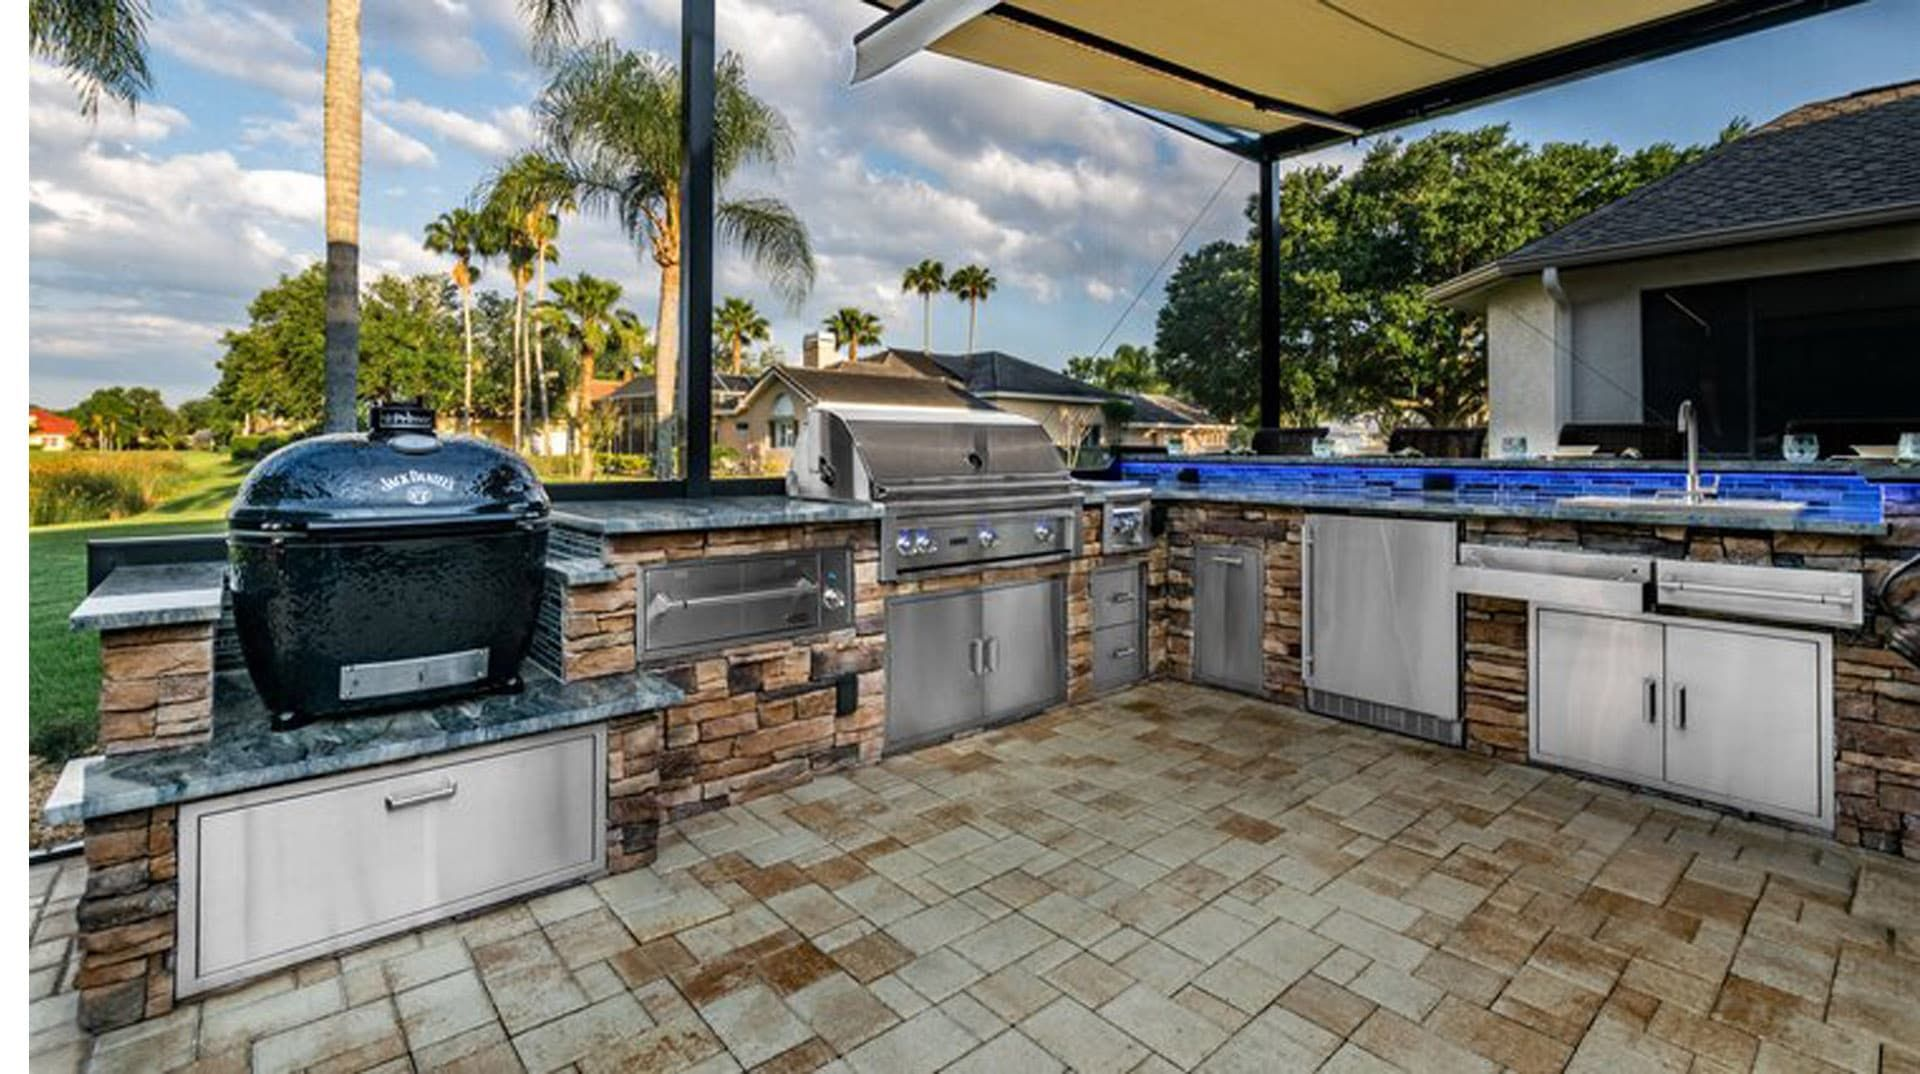 st. petersburg second home mortgage, st. petersburg second home loan, st. petersburg fl mortgage second home, st. petersburg  mortgage